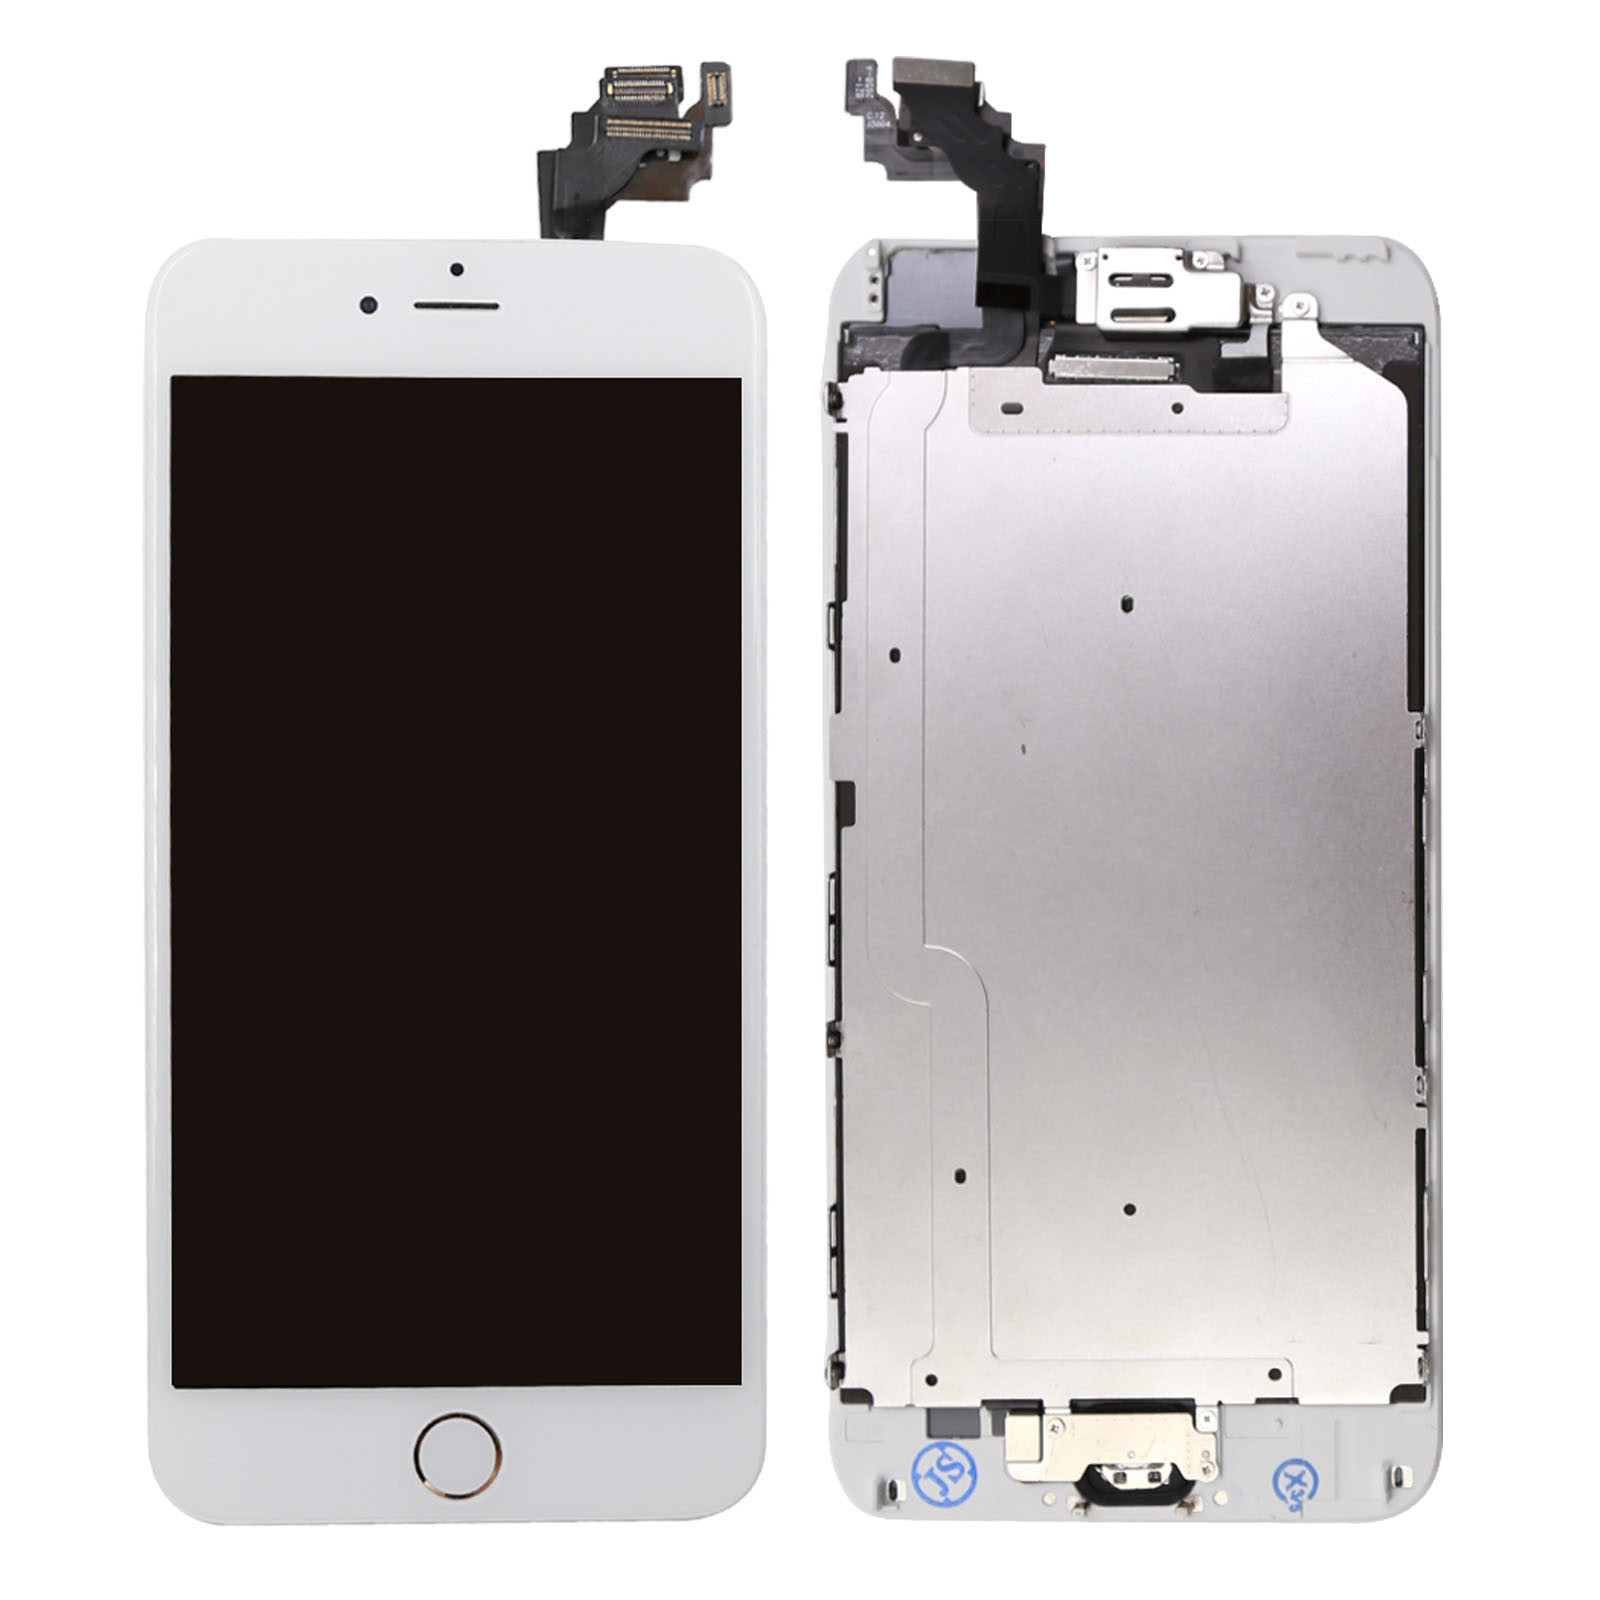 for iphone 6 plus digitizer complete screen replacement. Black Bedroom Furniture Sets. Home Design Ideas